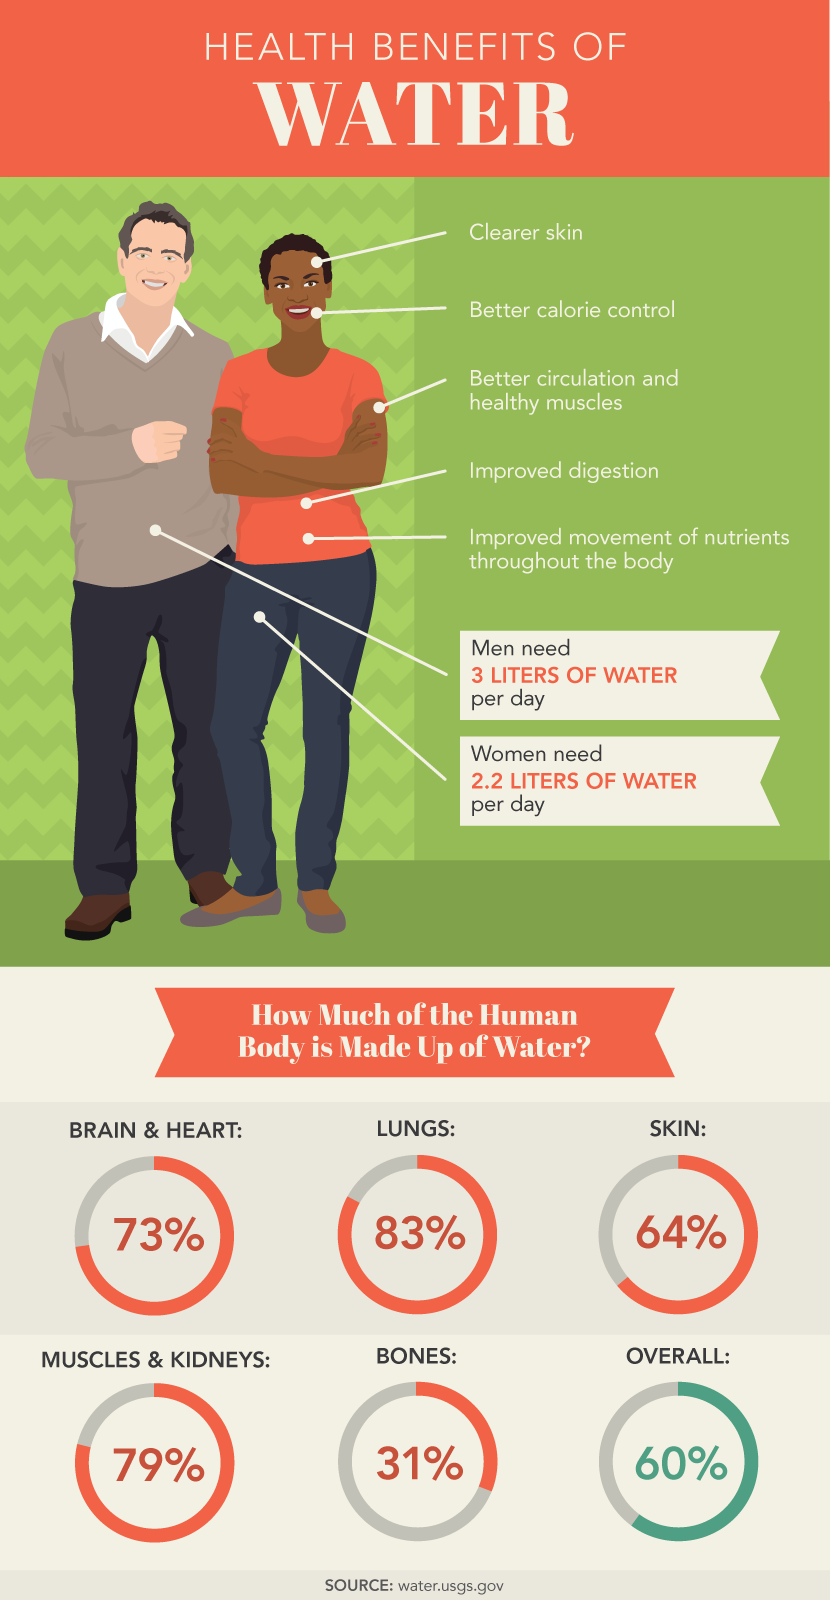 Stay Hydrated With Infused Water: The importance of water in the human body